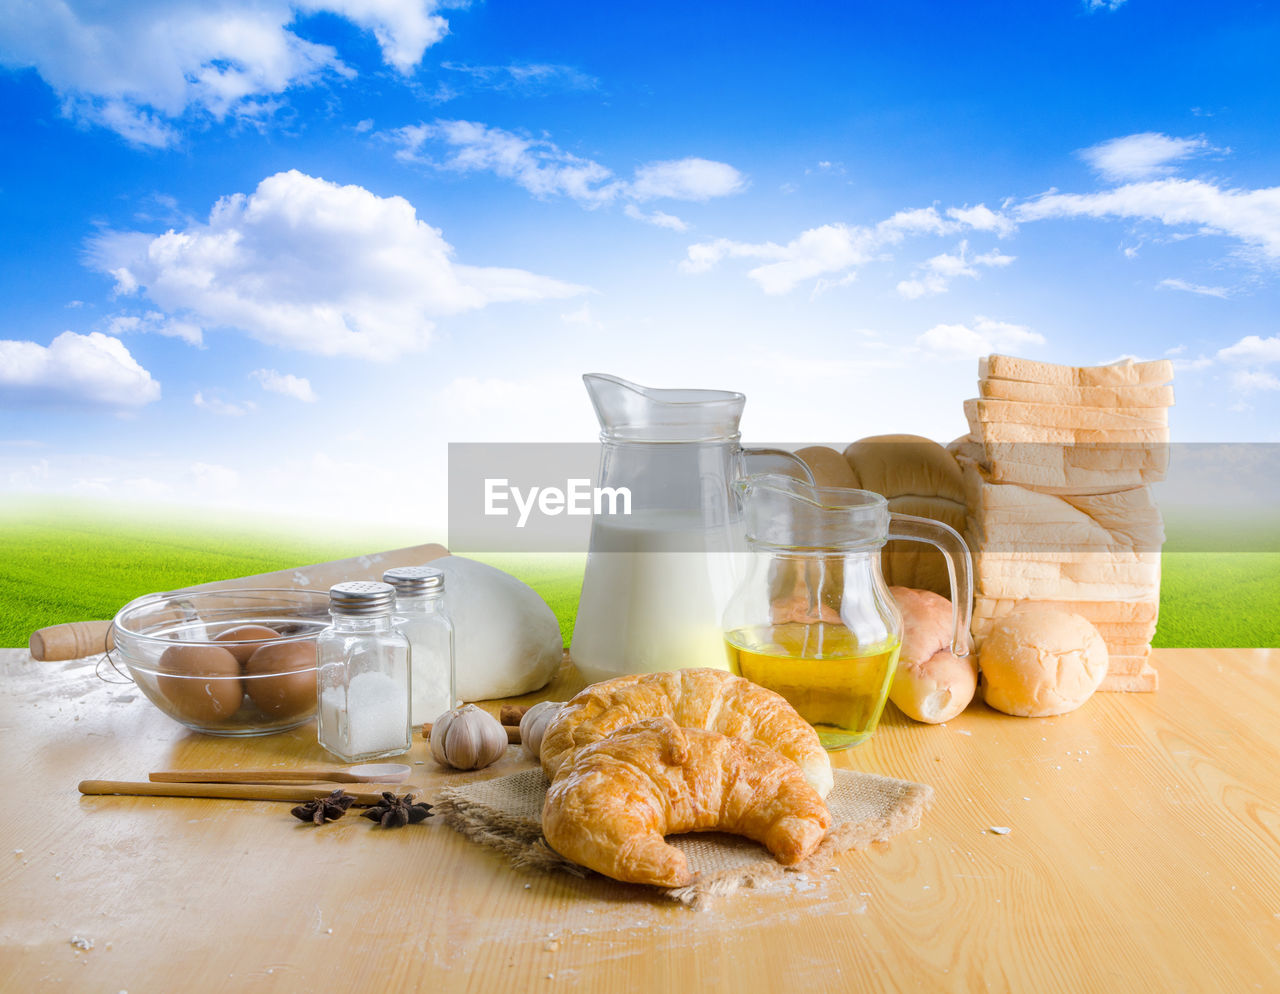 High Angle View Of Croissant And Ingredients On Table Against Sky